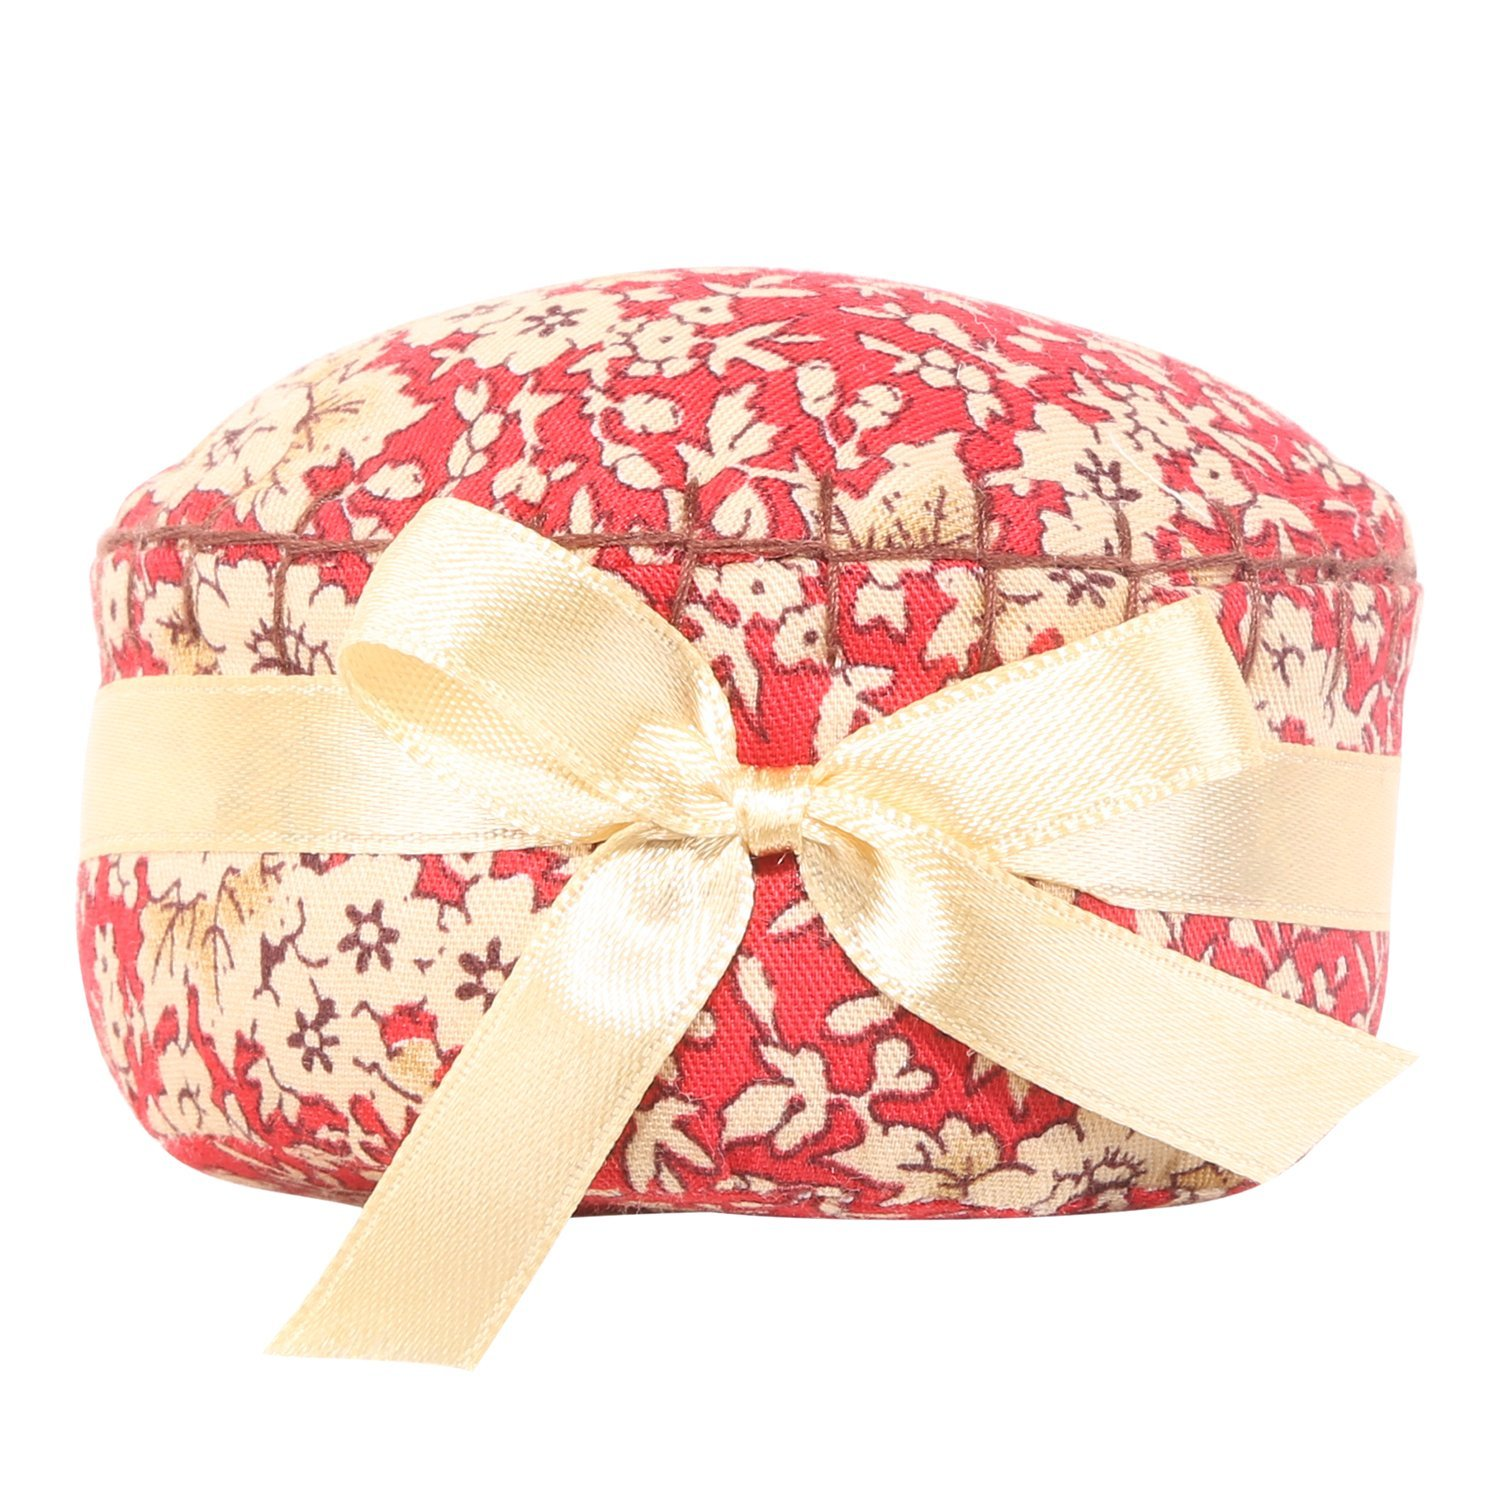 Neoviva Fabric Coated Pin Cushion for Long Needle with Satin Ribbon, Style Cupcake, Pack of 2, Floral Mandarin Red Blossom